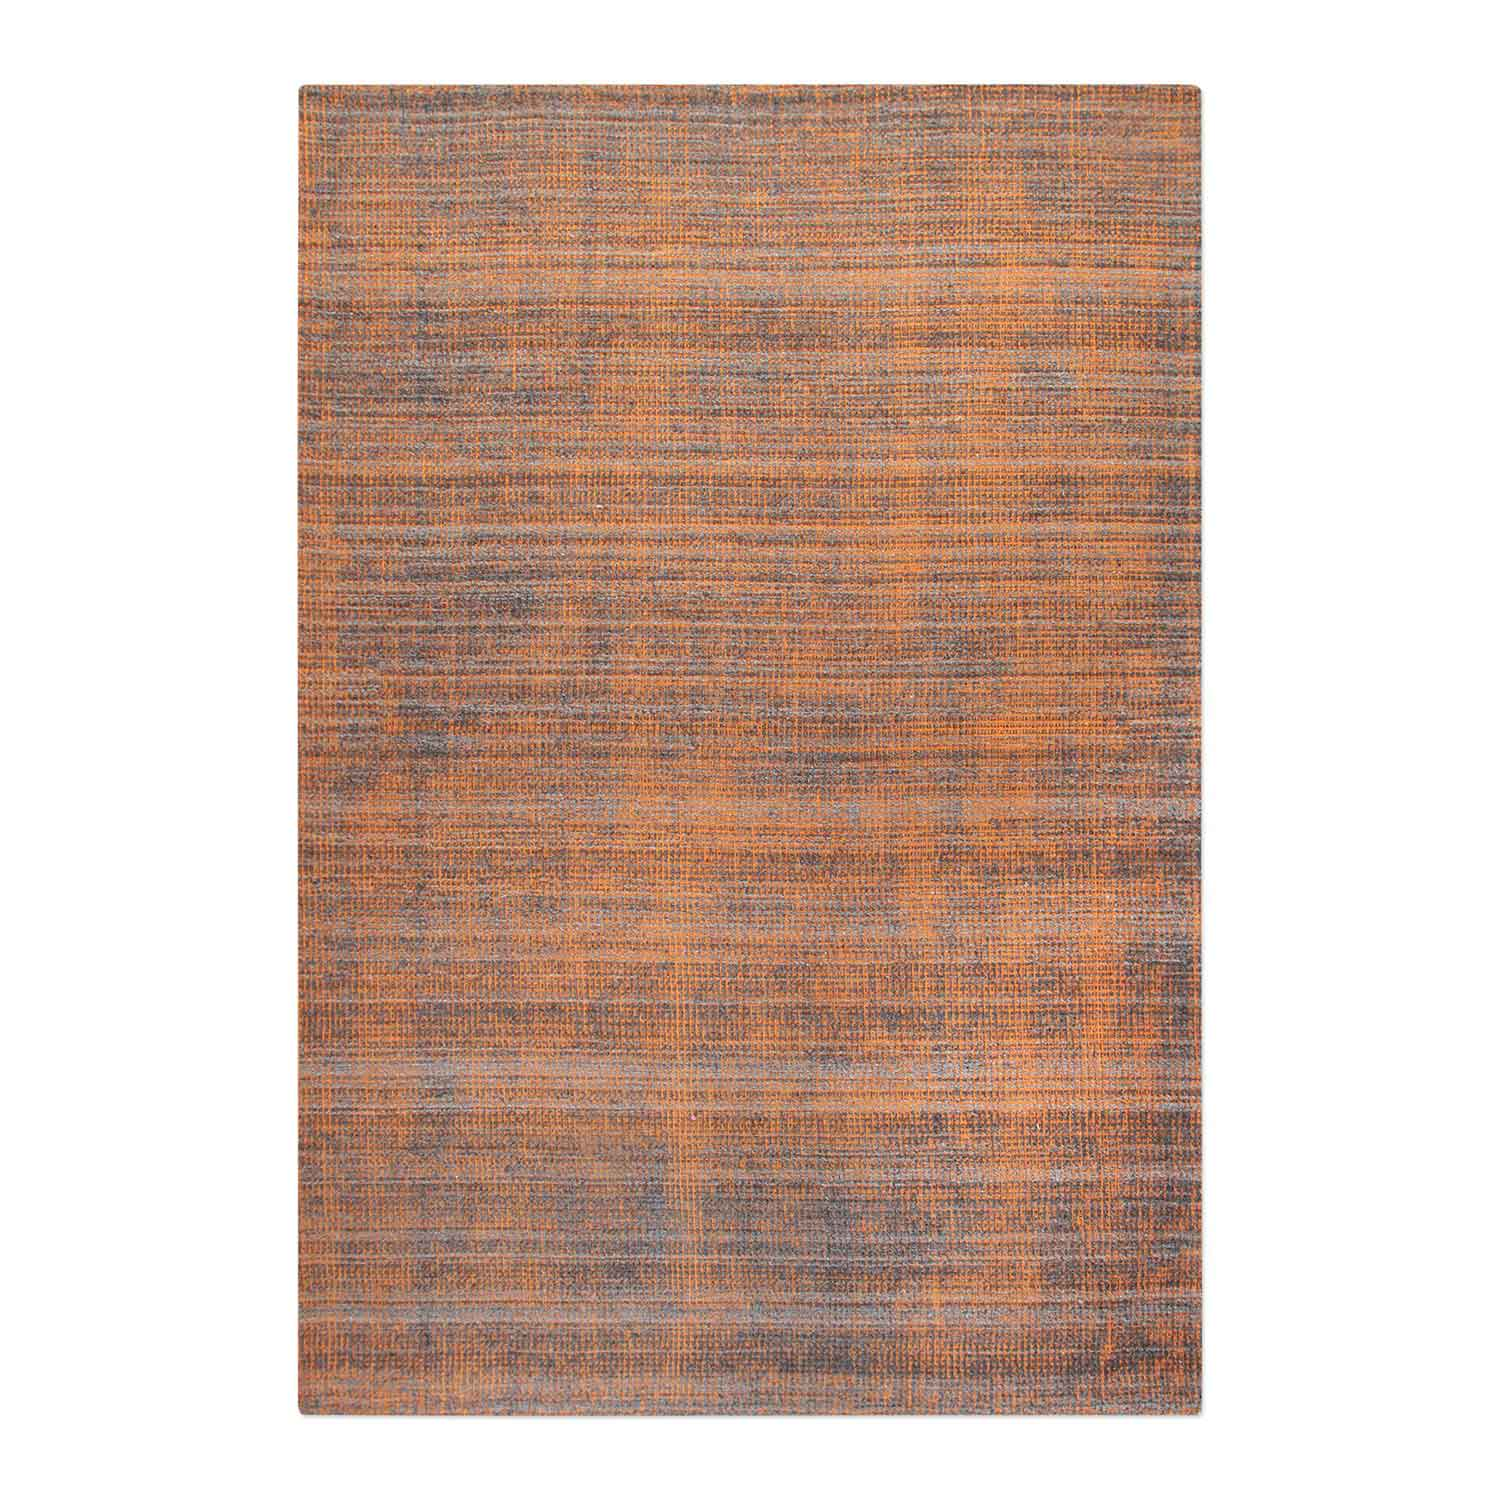 Uttermost Medanos 9 x 12 Rug - Burnt Orange